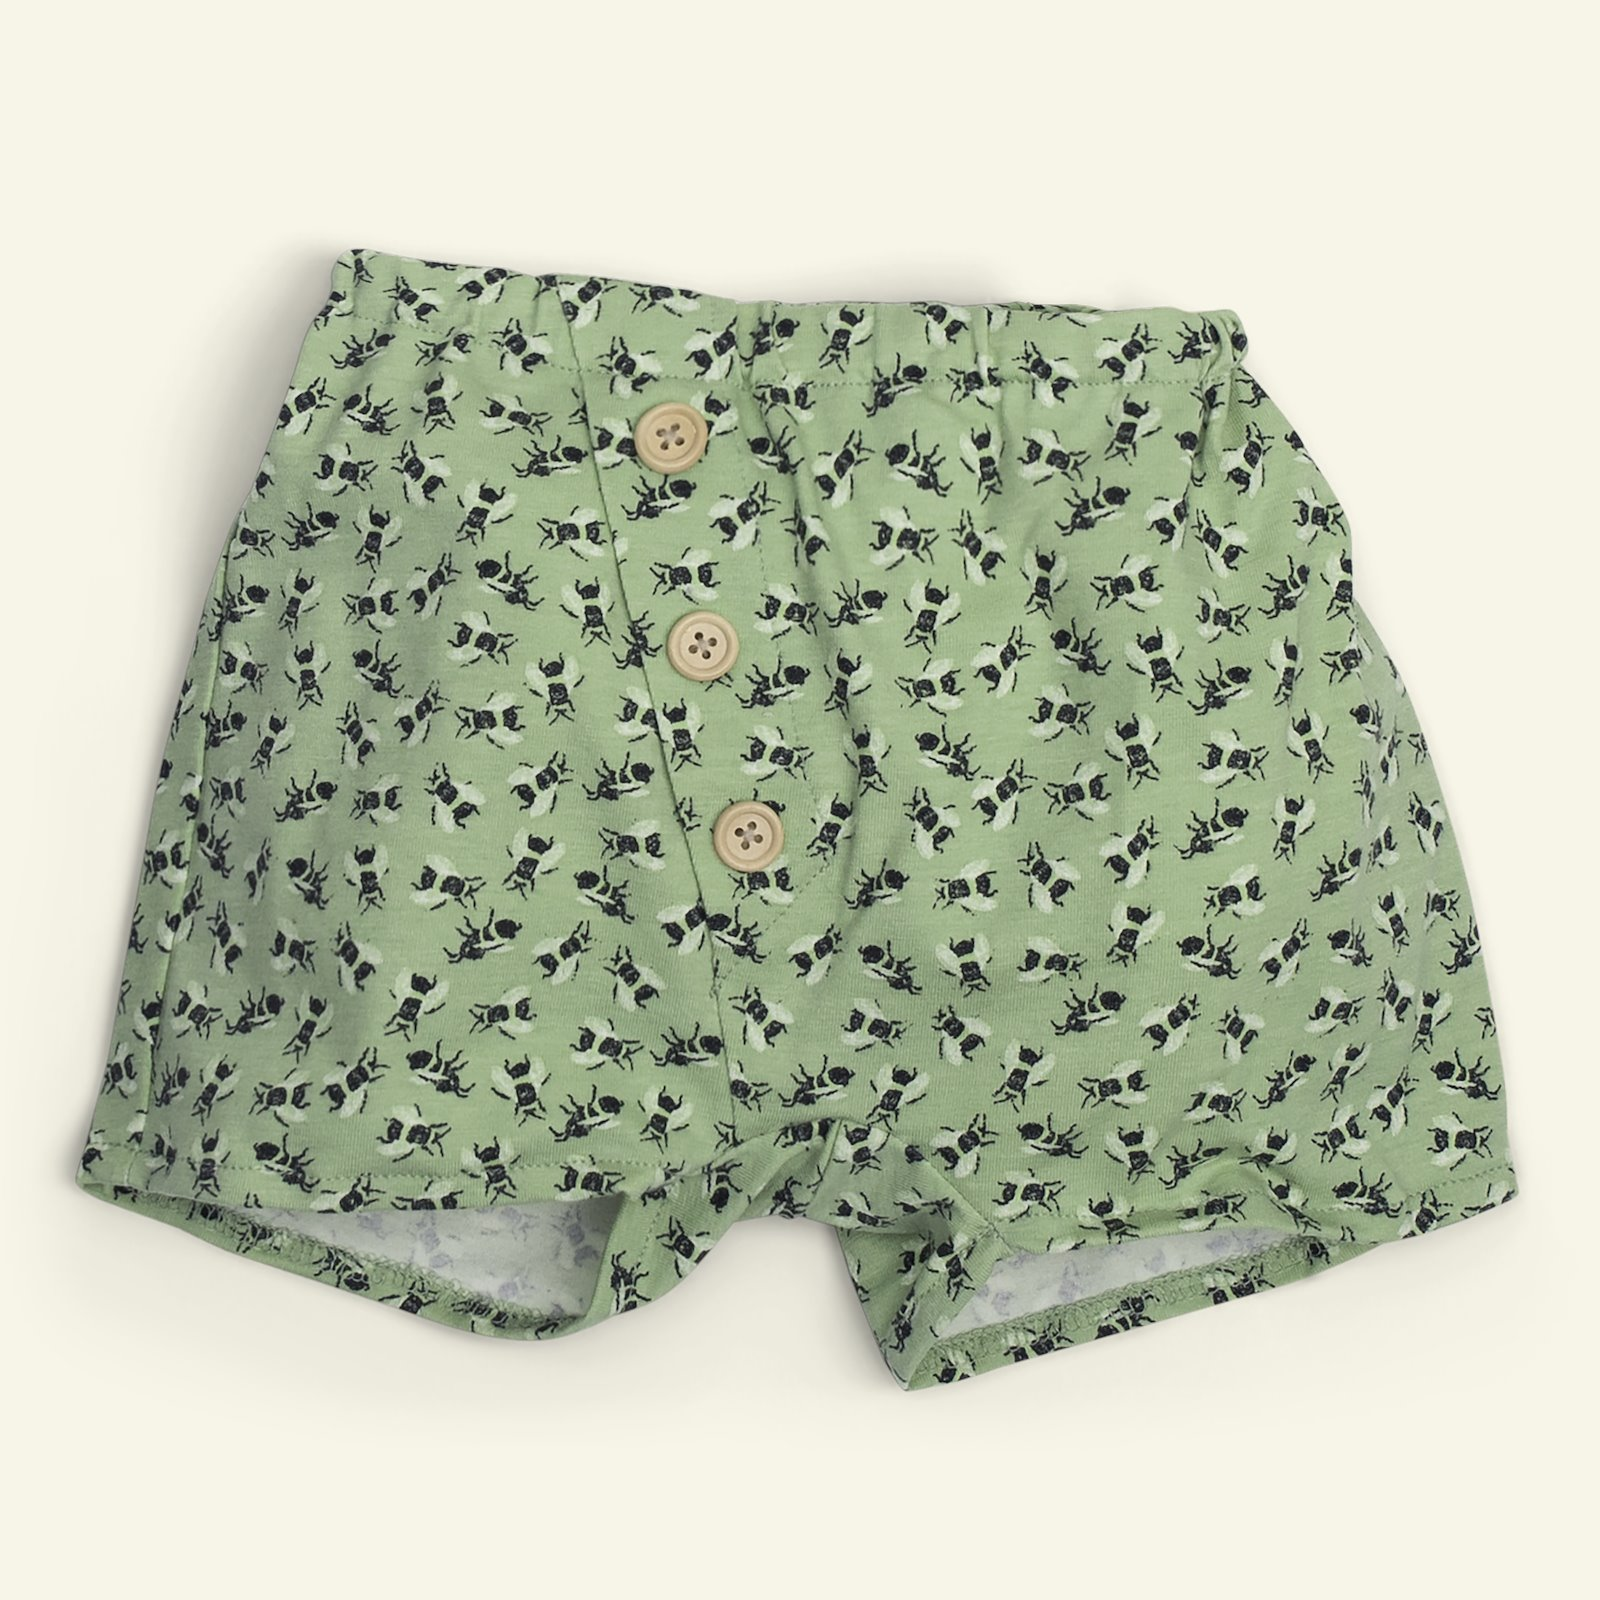 Trousers and shorts, 62/3m p80008_272731_33504_sskit